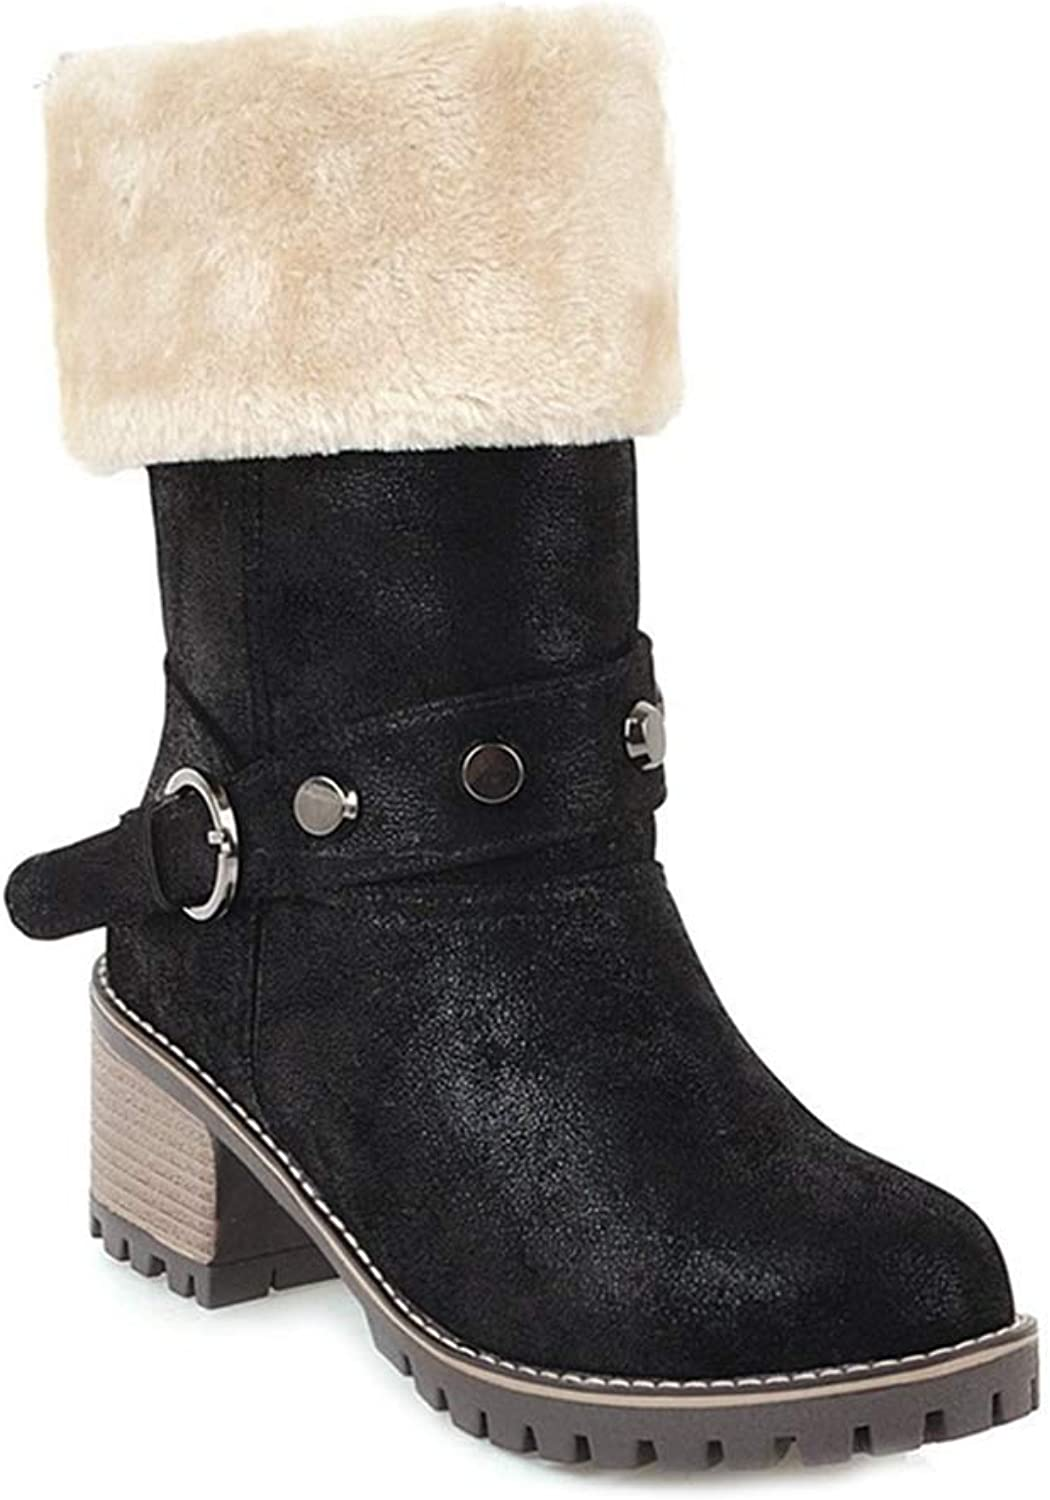 GIY Women's Winter Fur Ankle Boots Buckle Platform Chunky Mid Stacked Heel Bootie Mid Calf Warm Snow Boots